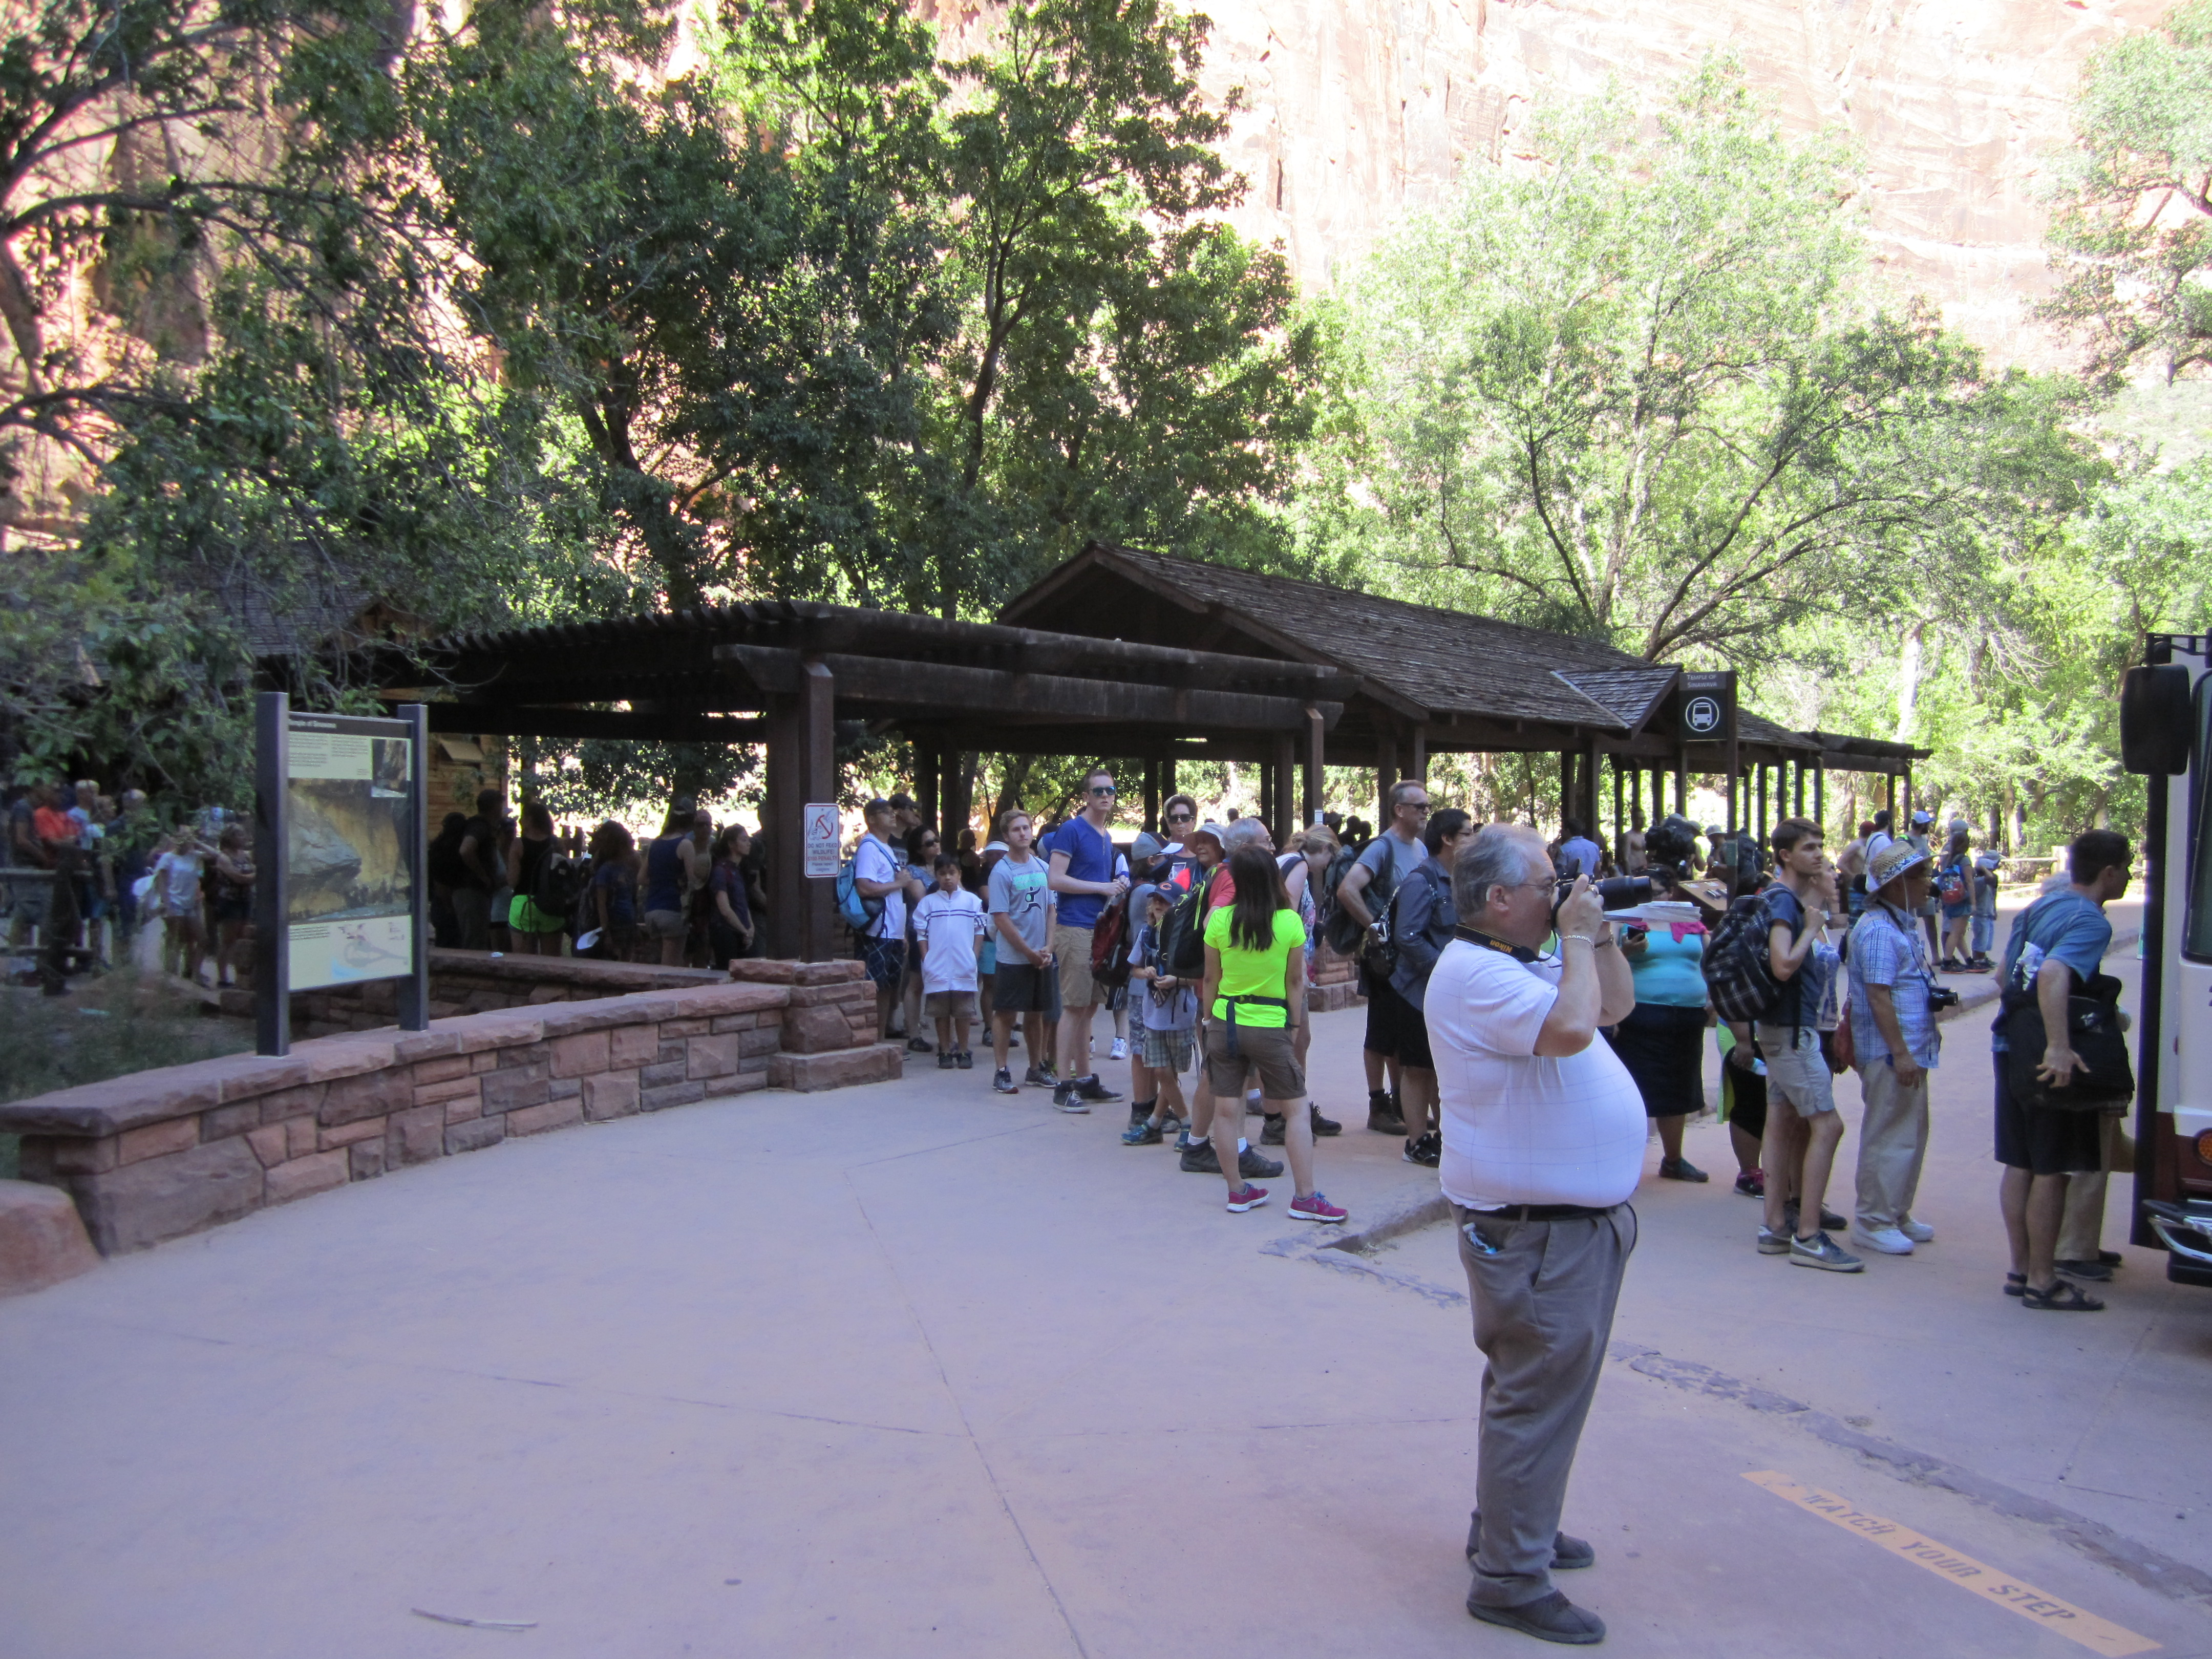 Visitors stand in line to board the shuttle at the Temple of Sinawava, the Riverside Walk Trailhead and terminus of the Zion Canyon Scenic Drive. Zion National Park, Utah, July 25, 2015 | Photo courtesy of Zion National Park, St. George News